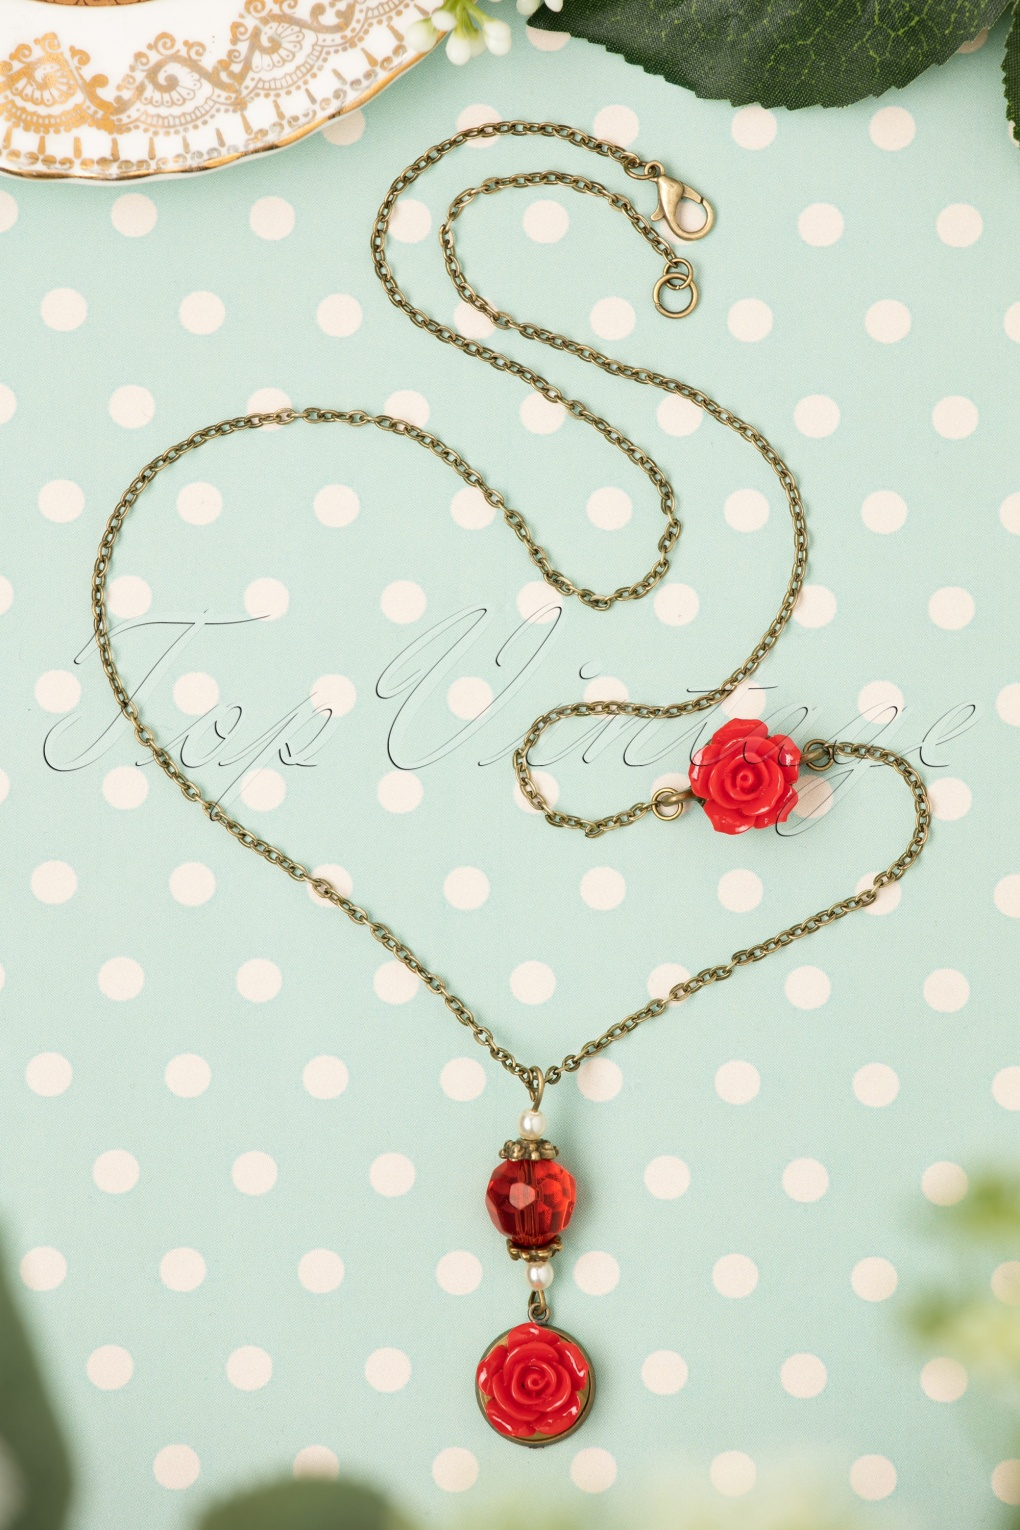 Vintage Style Jewelry, Retro Jewelry 40s I Love My Red Roses Necklace £13.12 AT vintagedancer.com